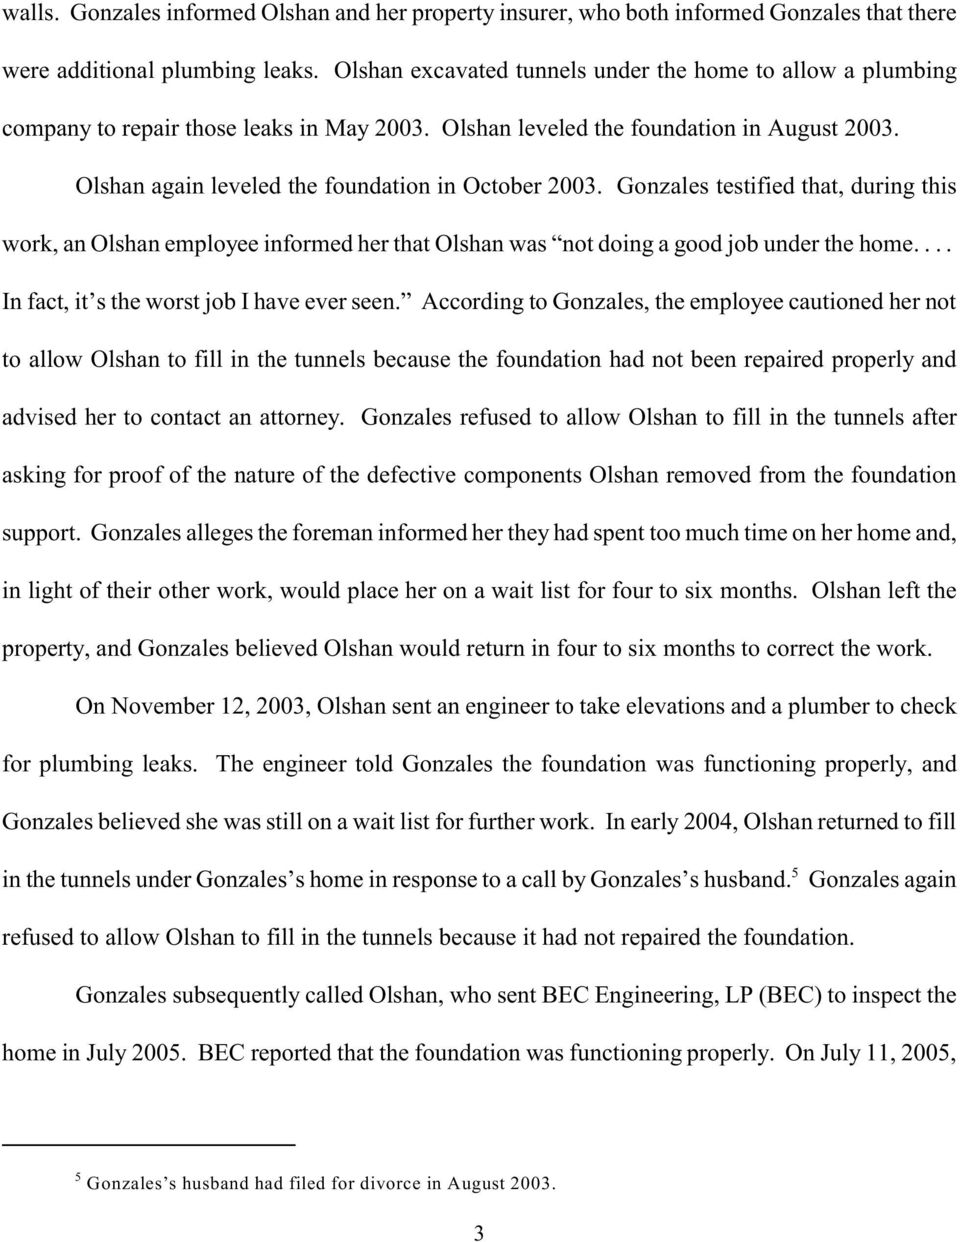 Olshan again leveled the foundation in October 2003. Gonzales testified that, during this work, an Olshan employee informed her that Olshan was not doing a good job under the home.